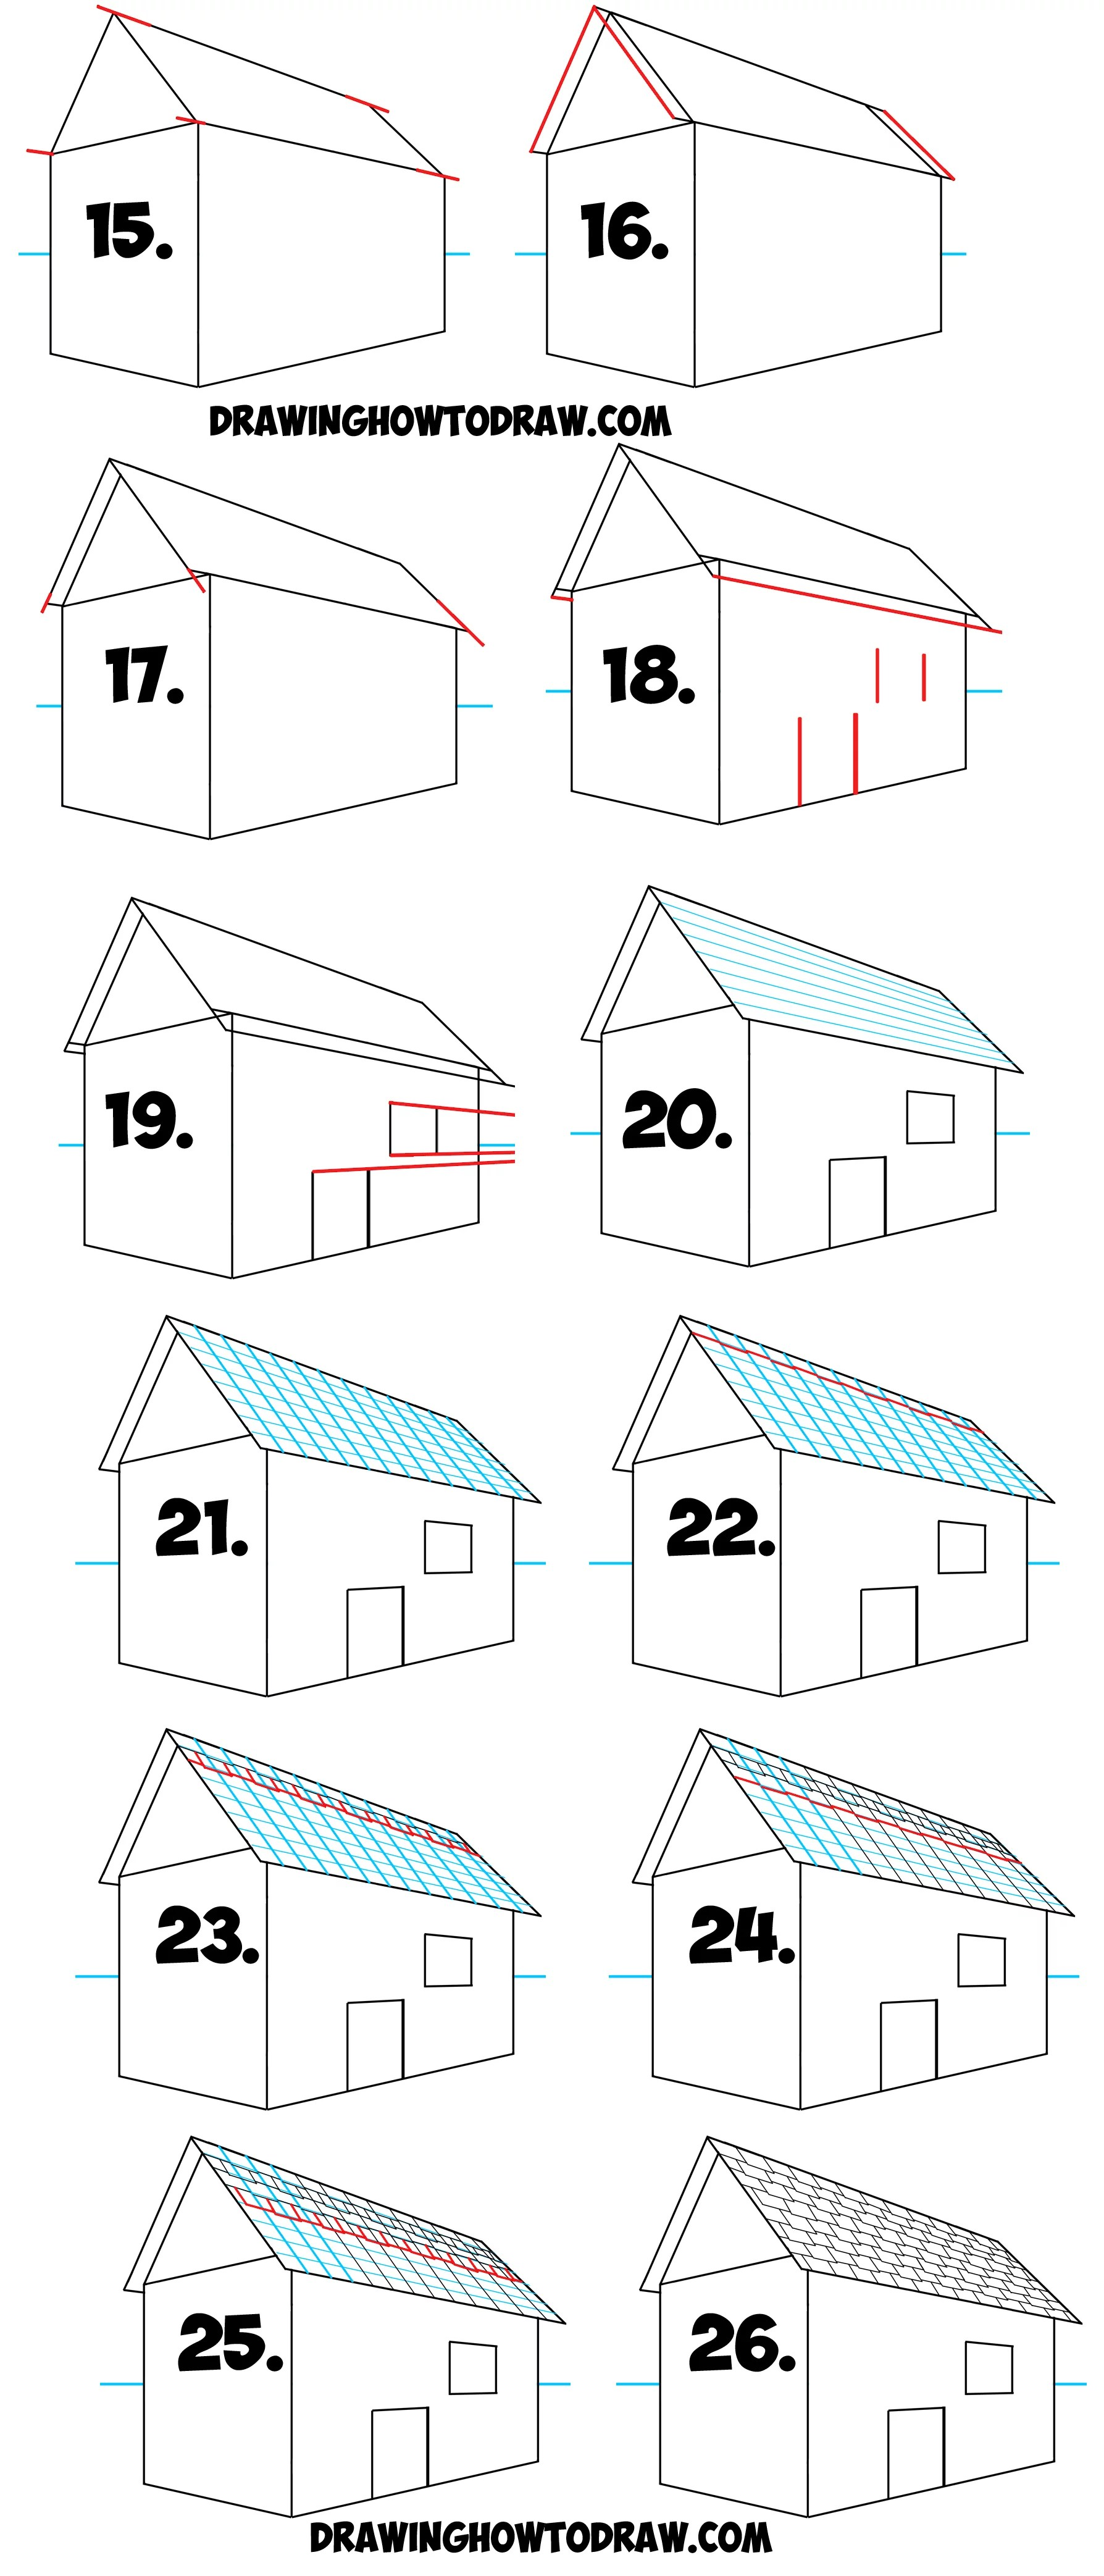 How To Draw A Roof And Shingles With Two Point Perspective